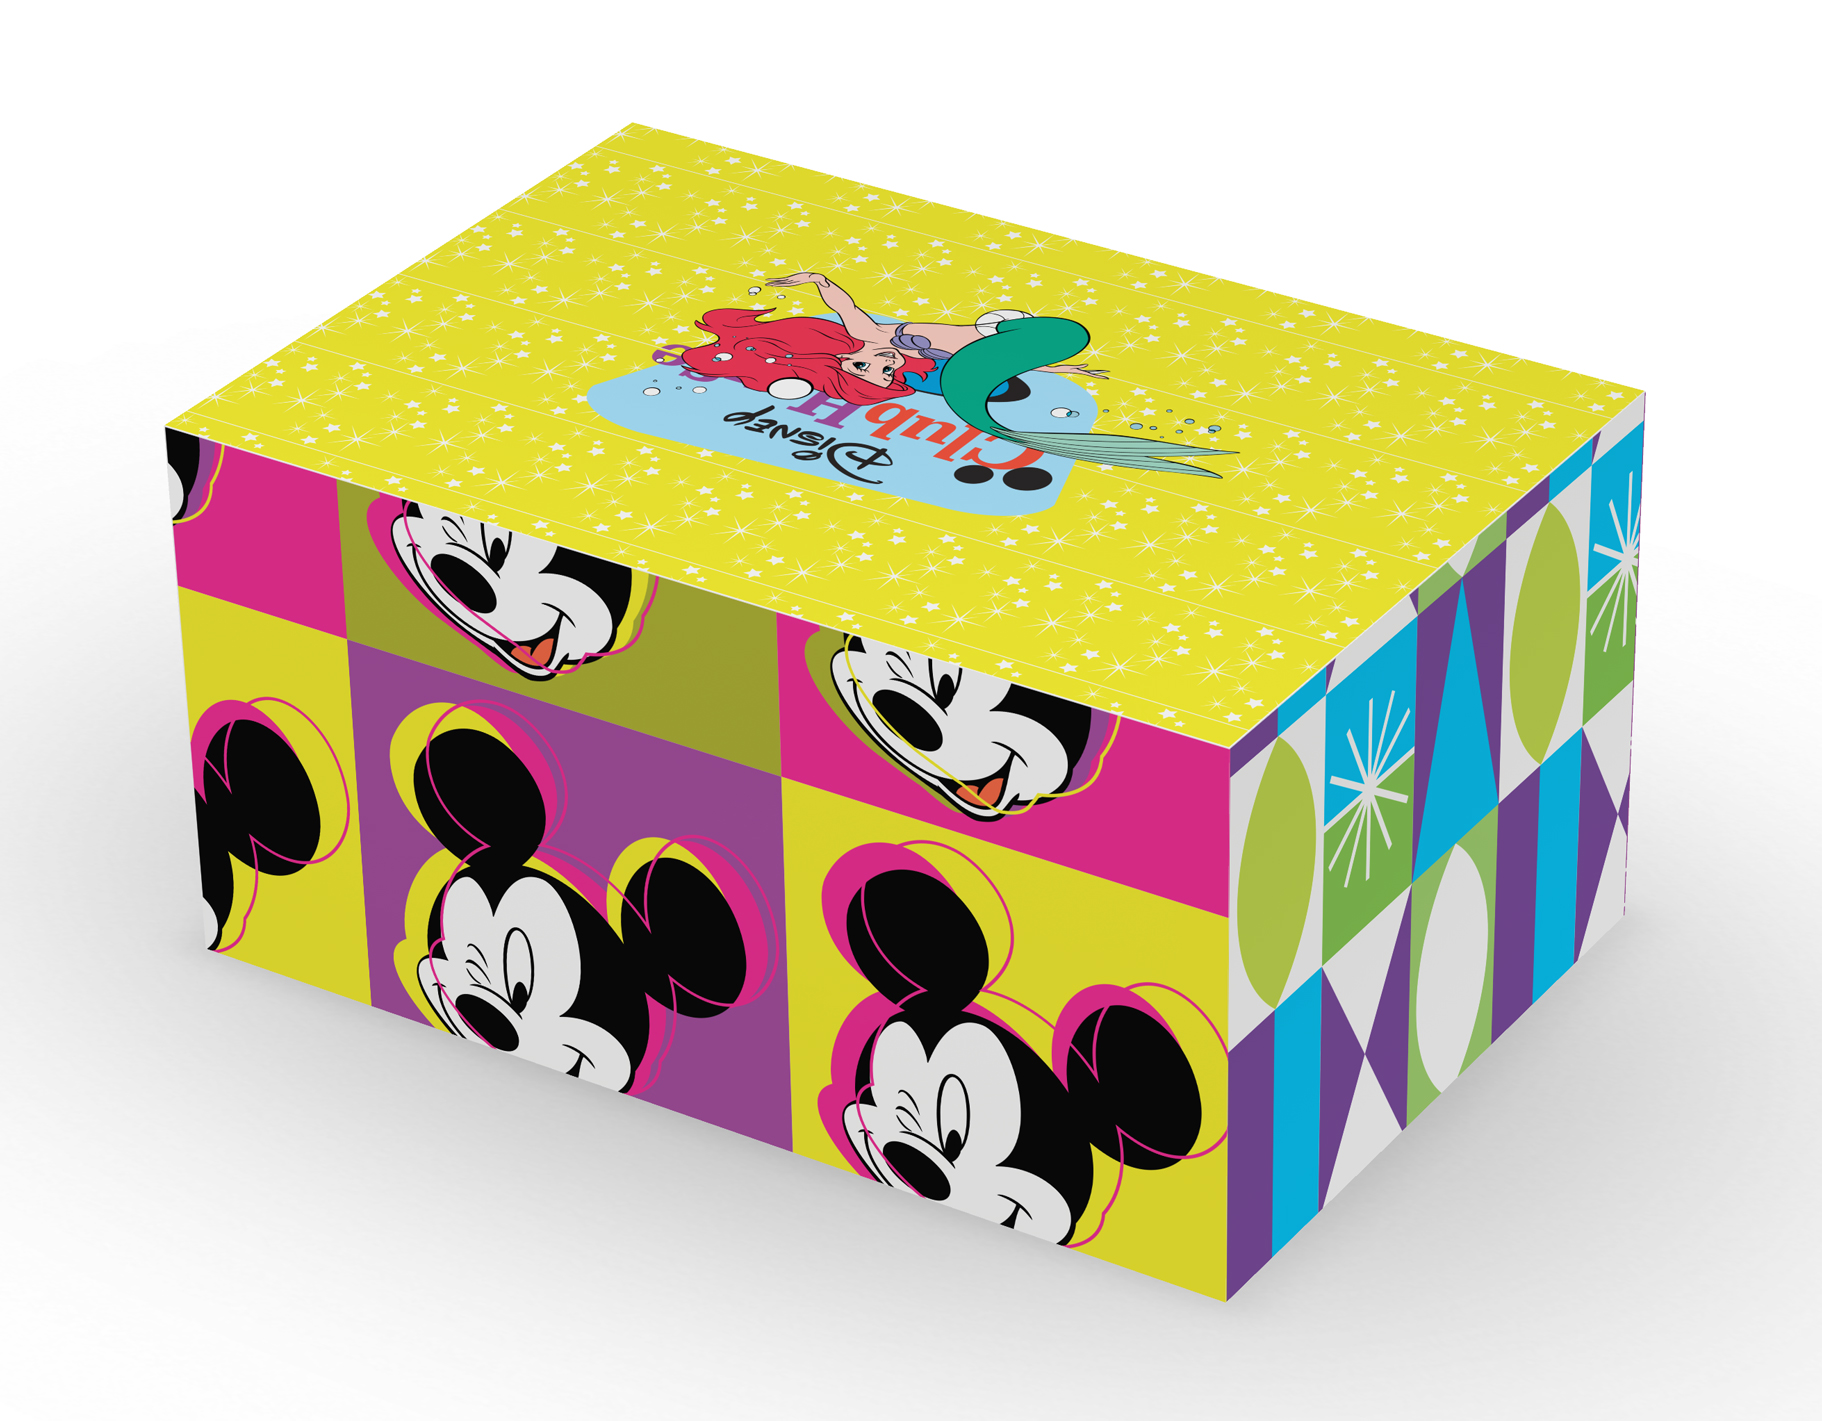 DisneyClubhouse_packaging2.jpg